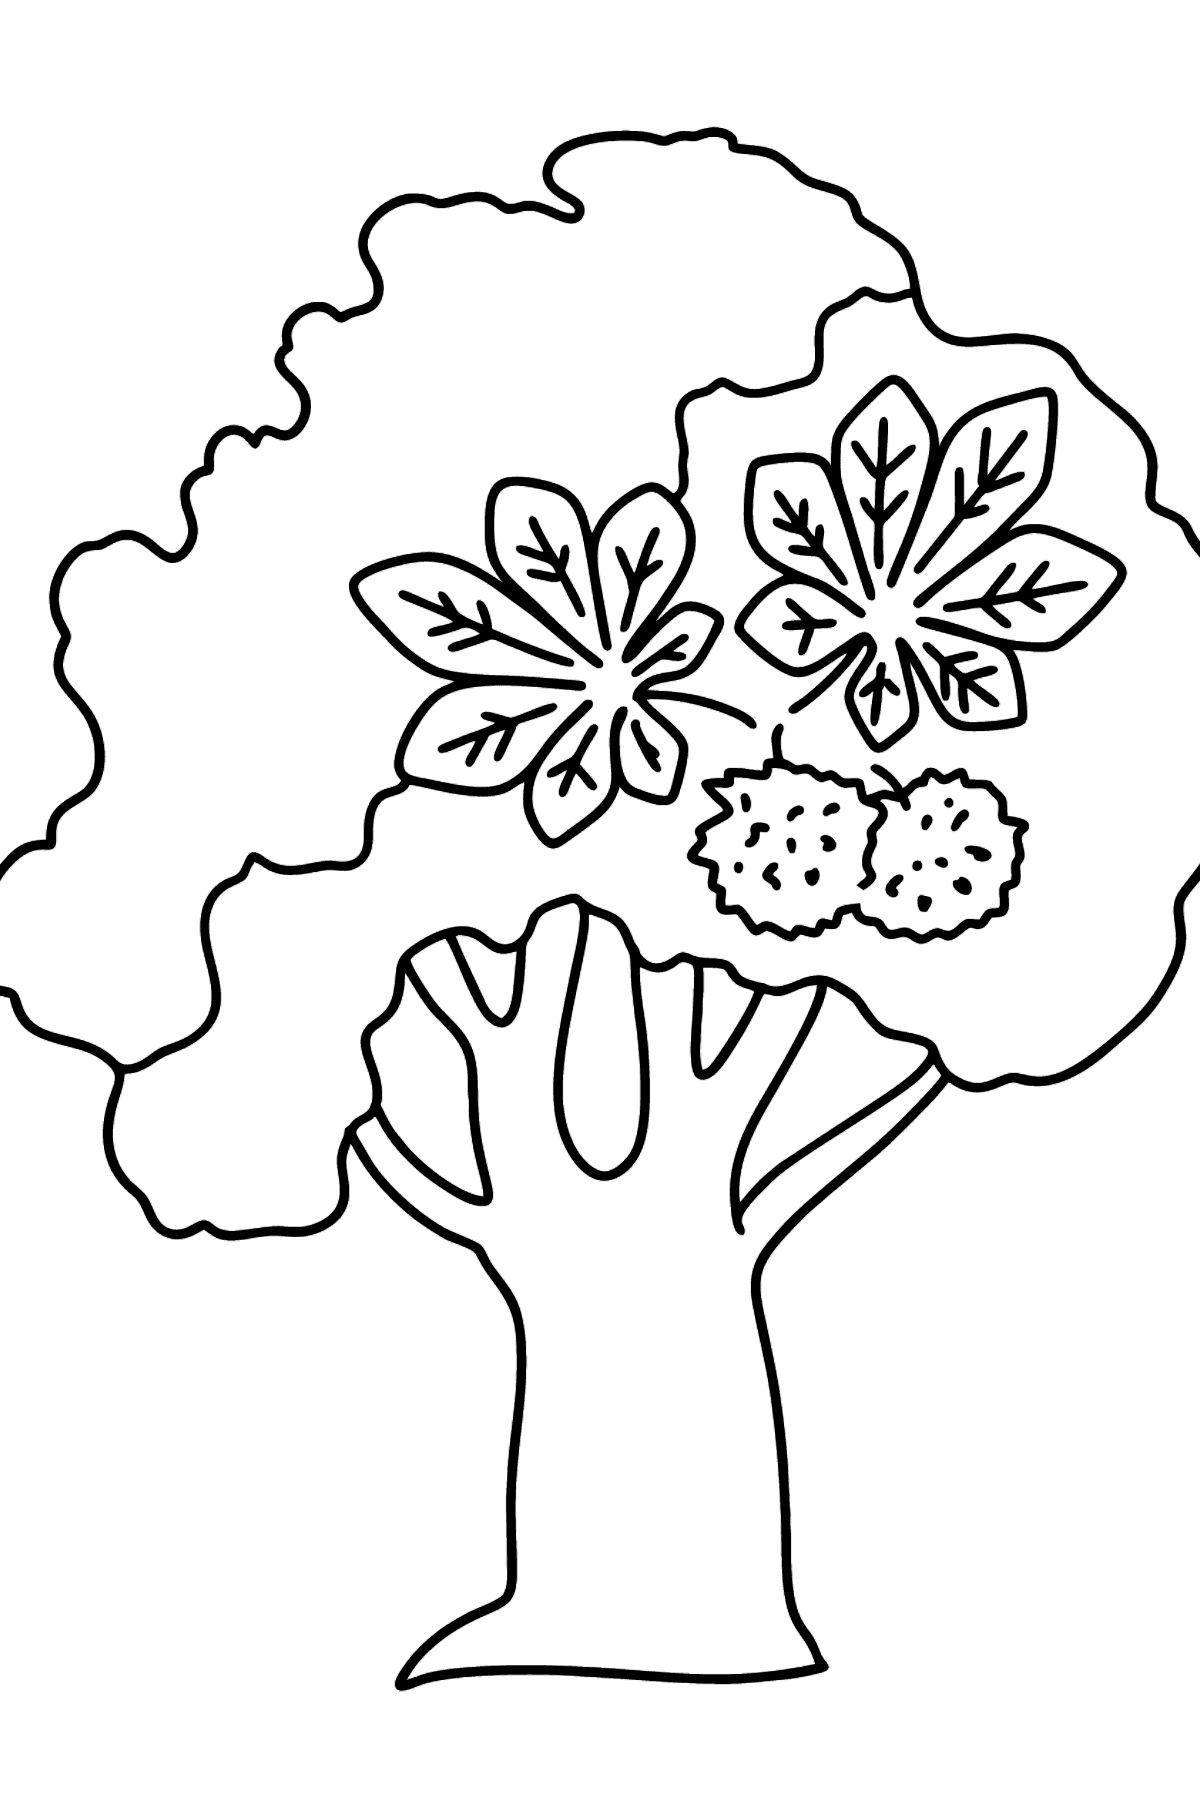 Chestnut coloring page - Coloring Pages for Kids